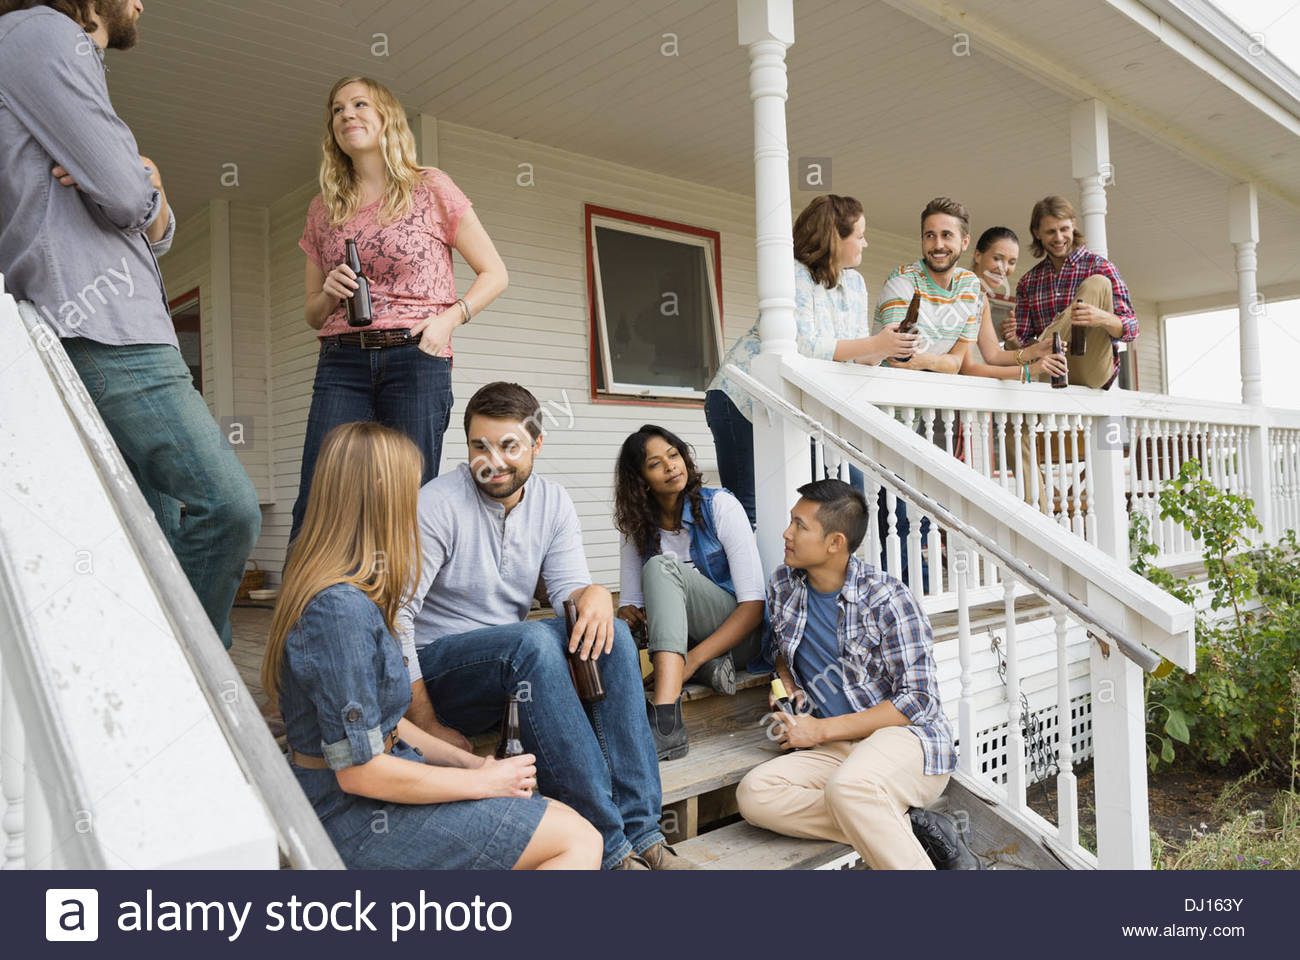 Multiethnic friends enjoying party on porch - Stock Image